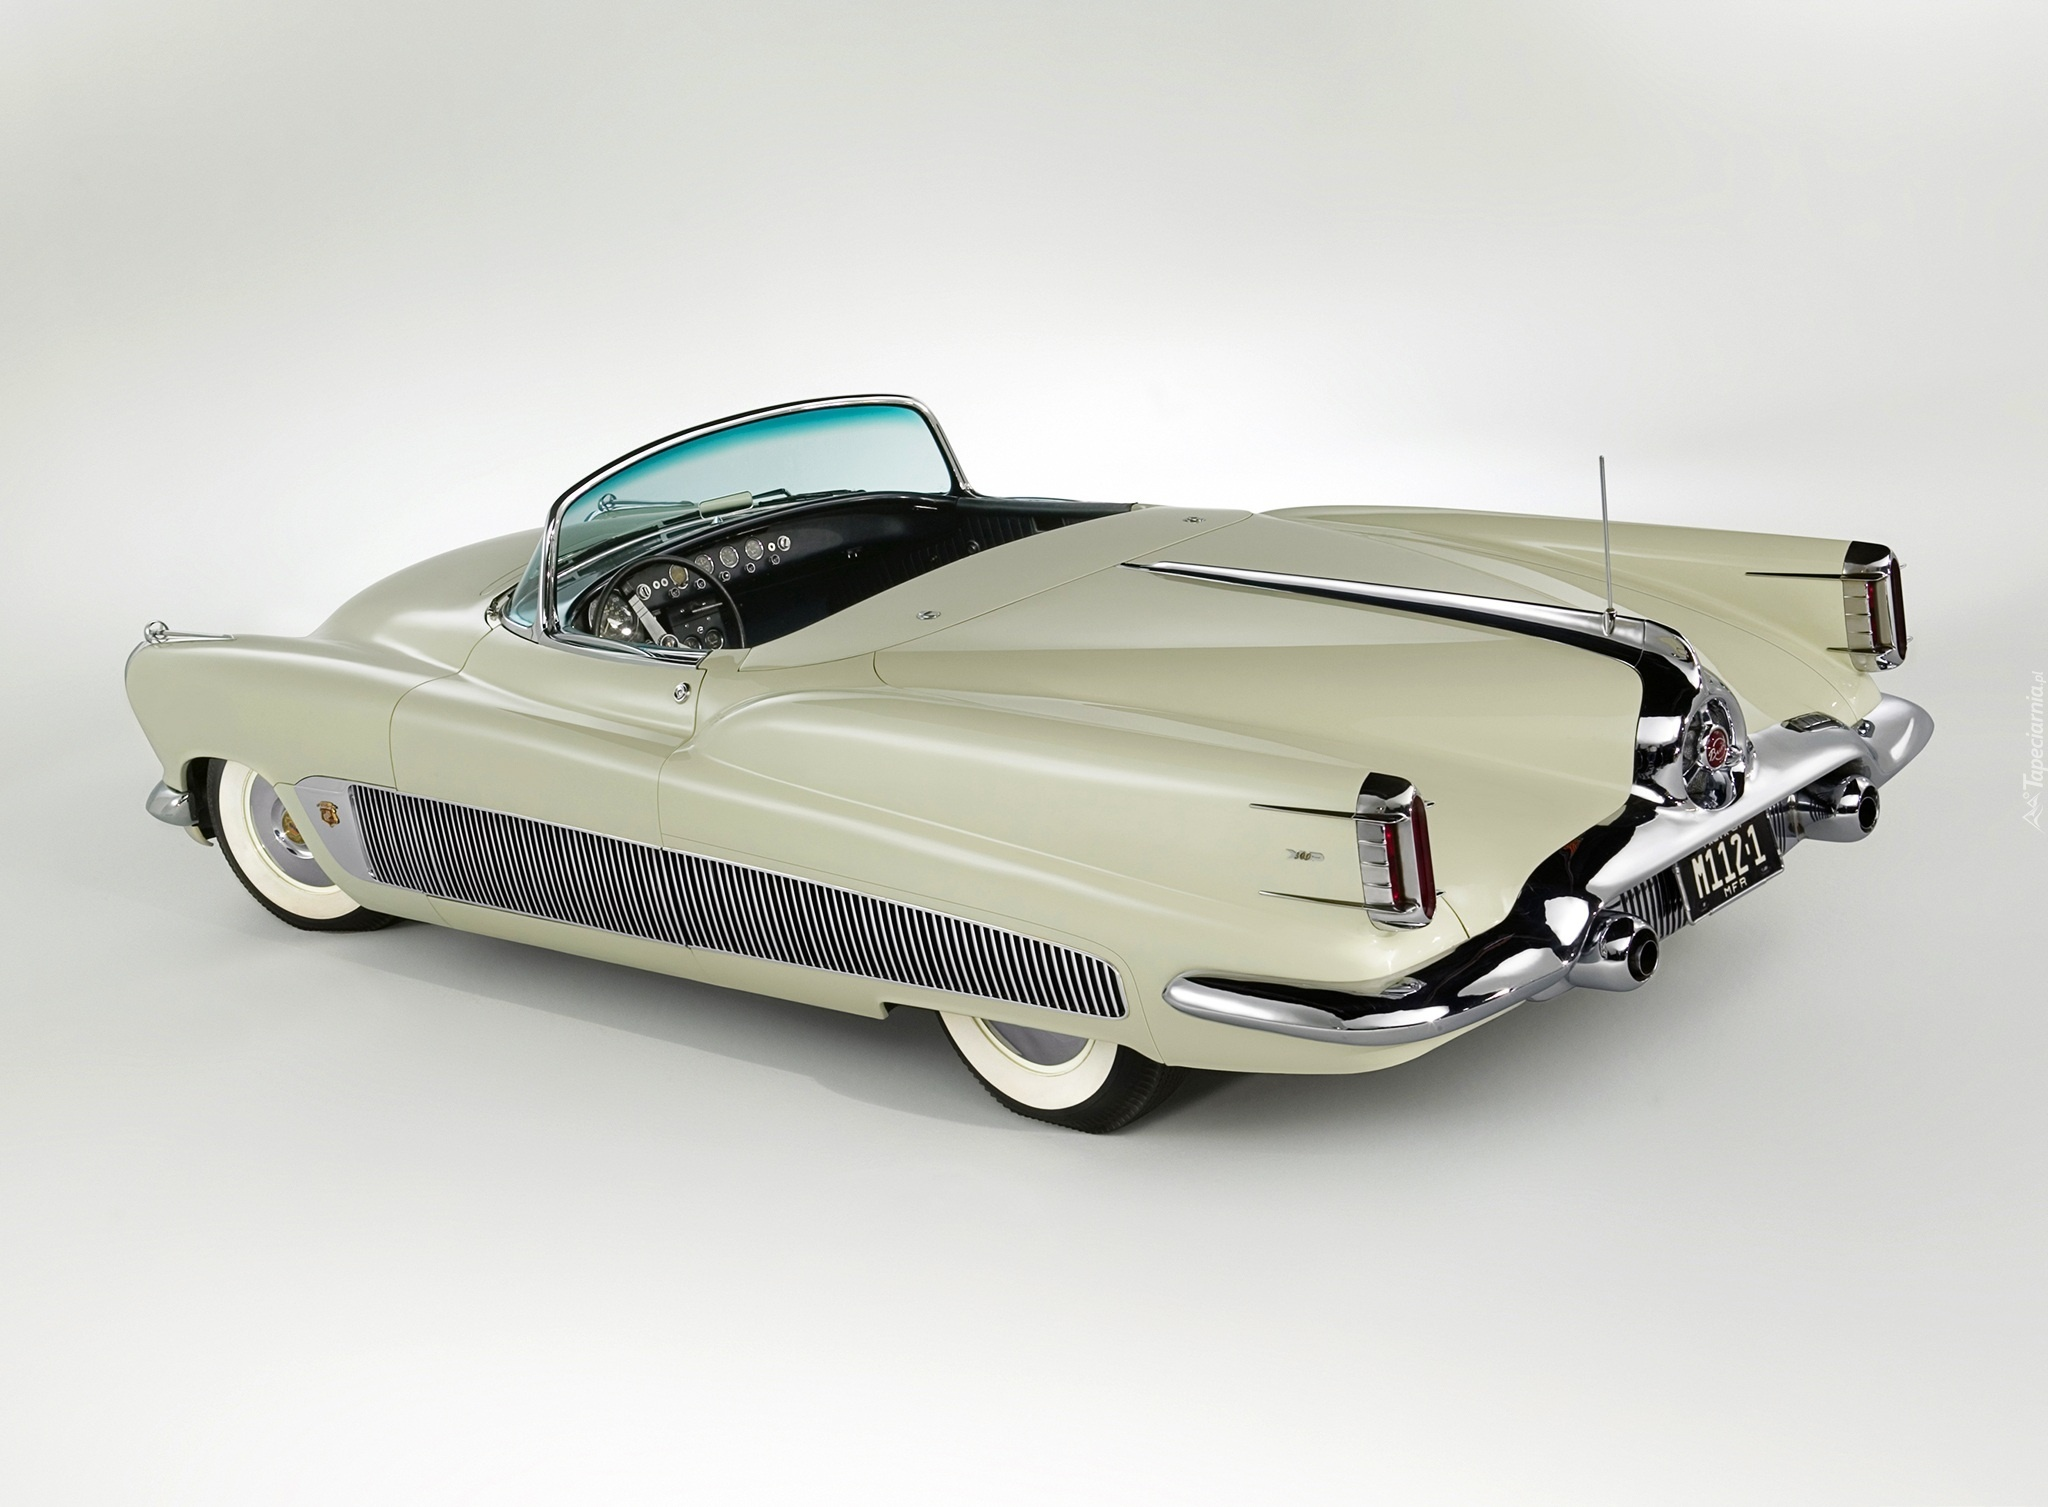 http://www.tapeciarnia.pl/tapeciarnia_pl.php?adres=138004_buick_xp300_concept_car.jpg